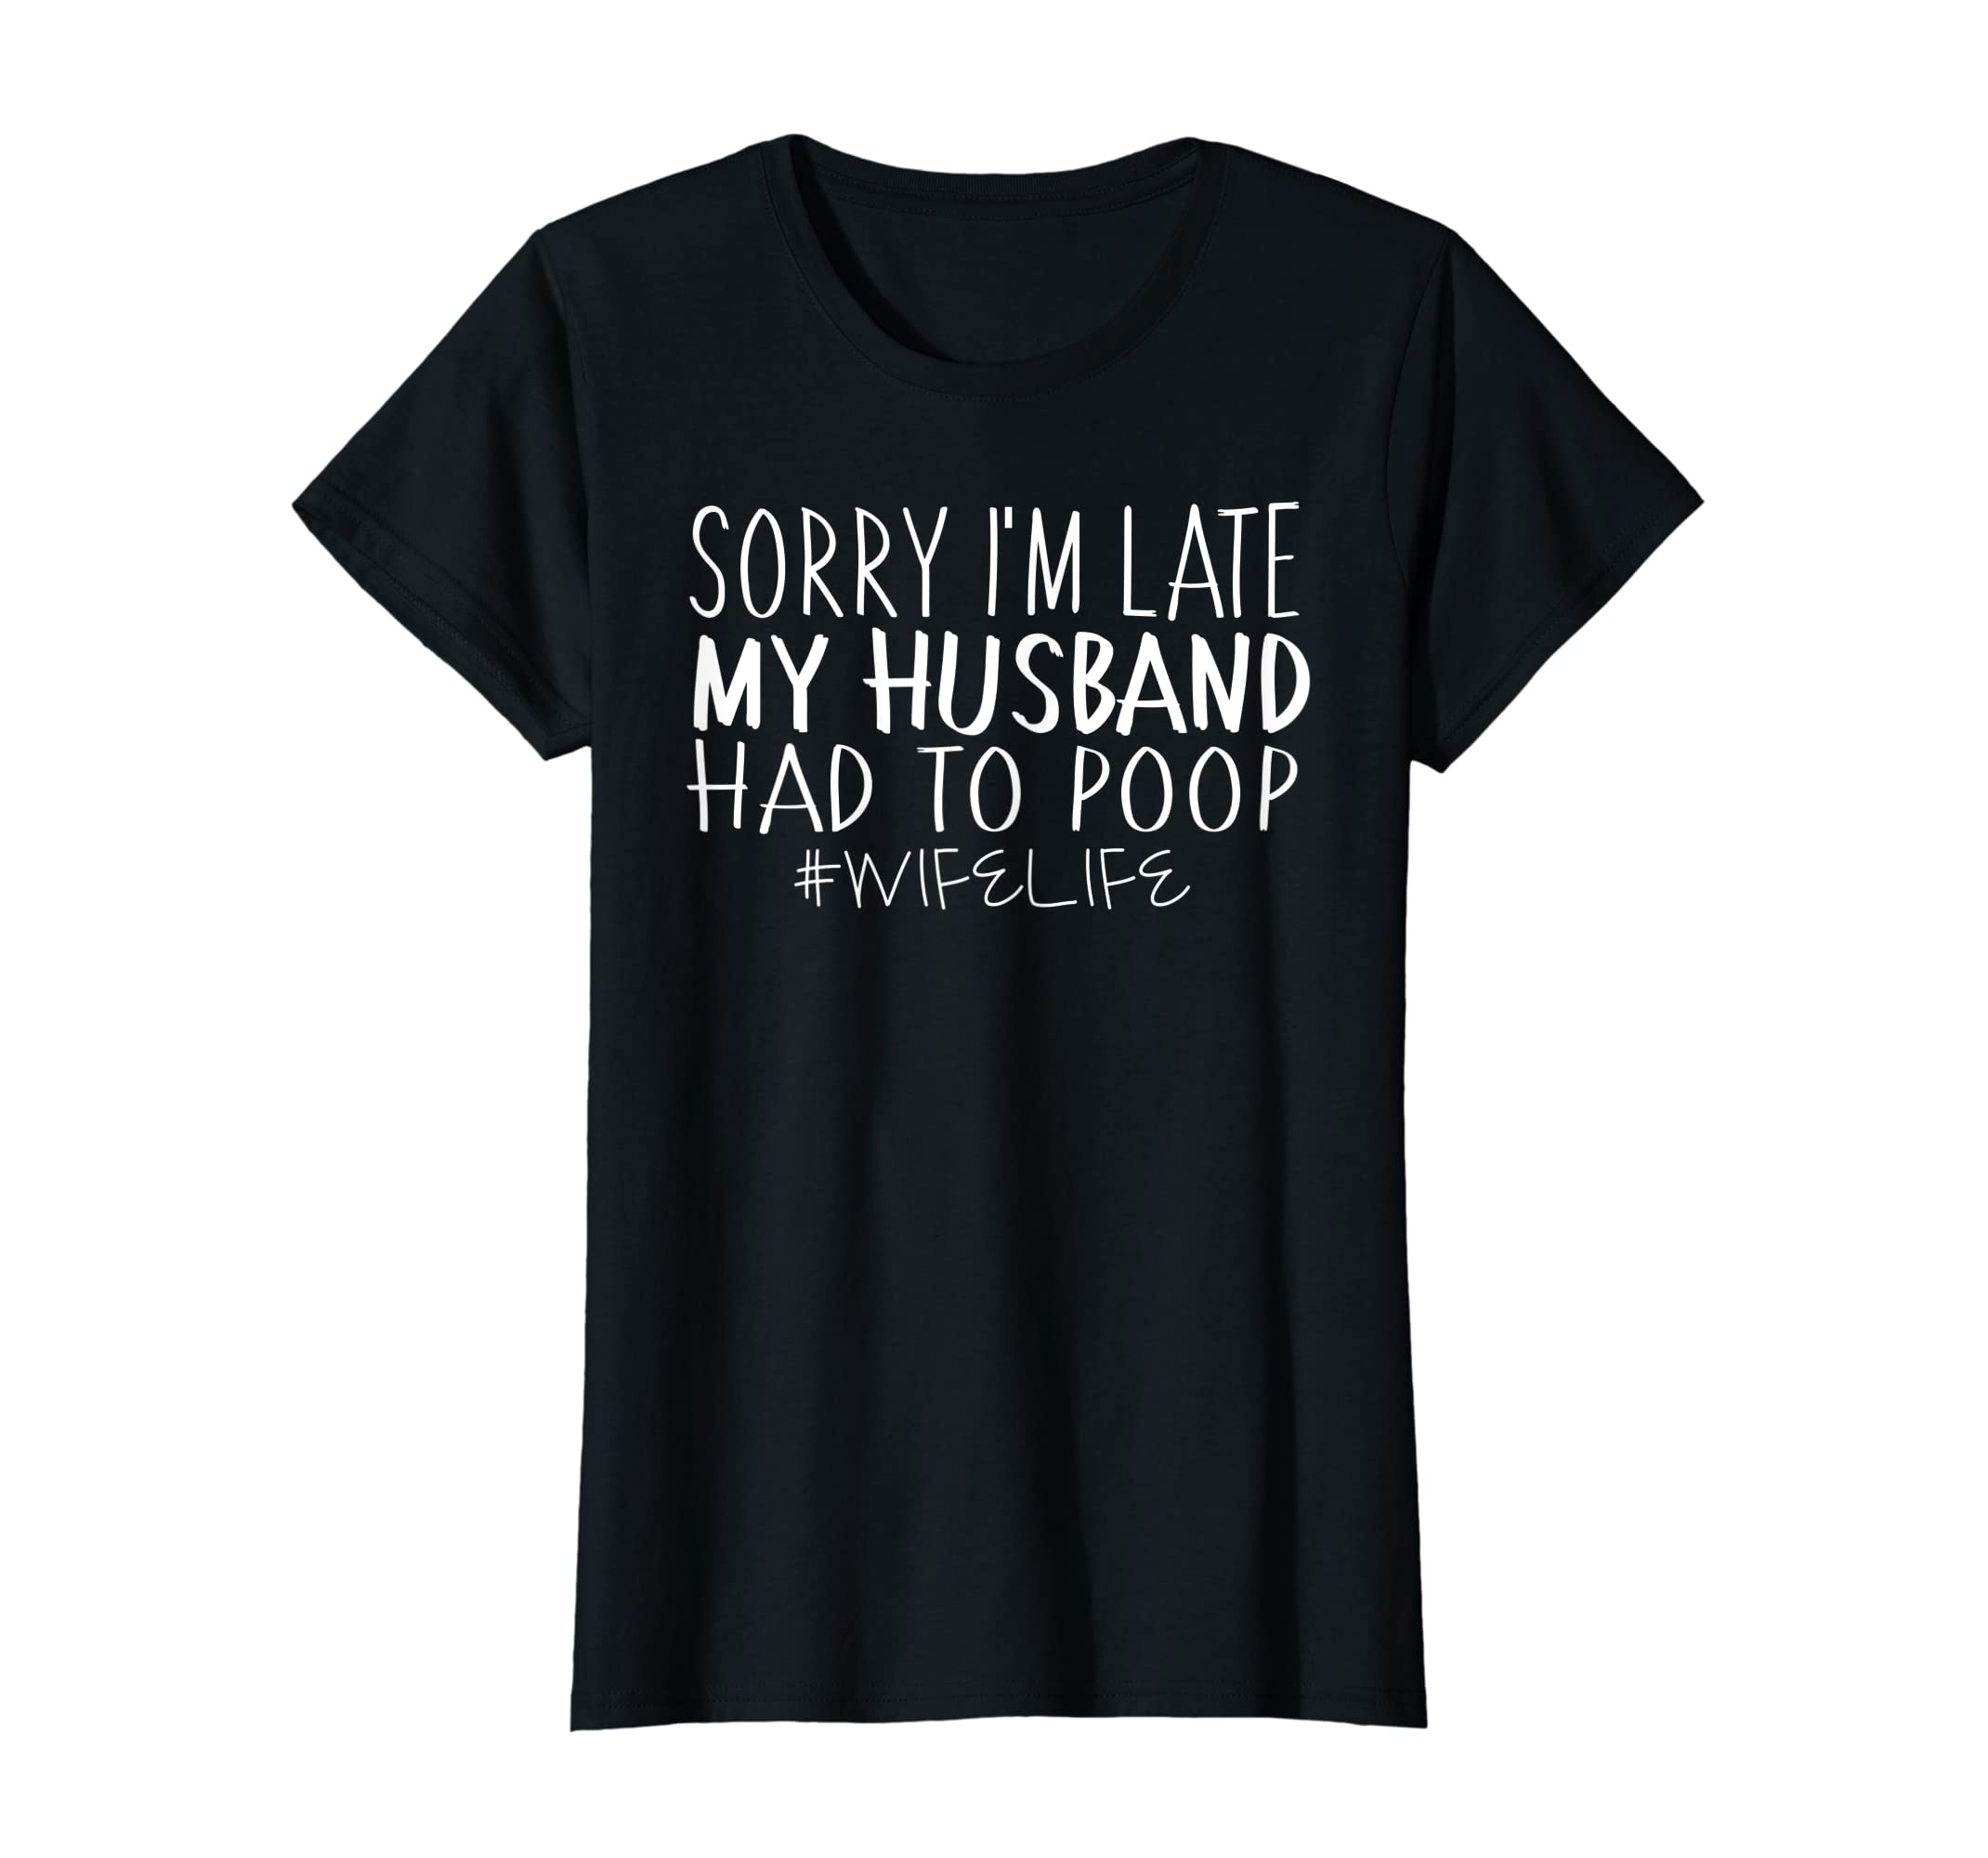 Womens Sorry I'm late my Husband had to poop - Wife life shirt Gift-Women's T-Shirt-Black